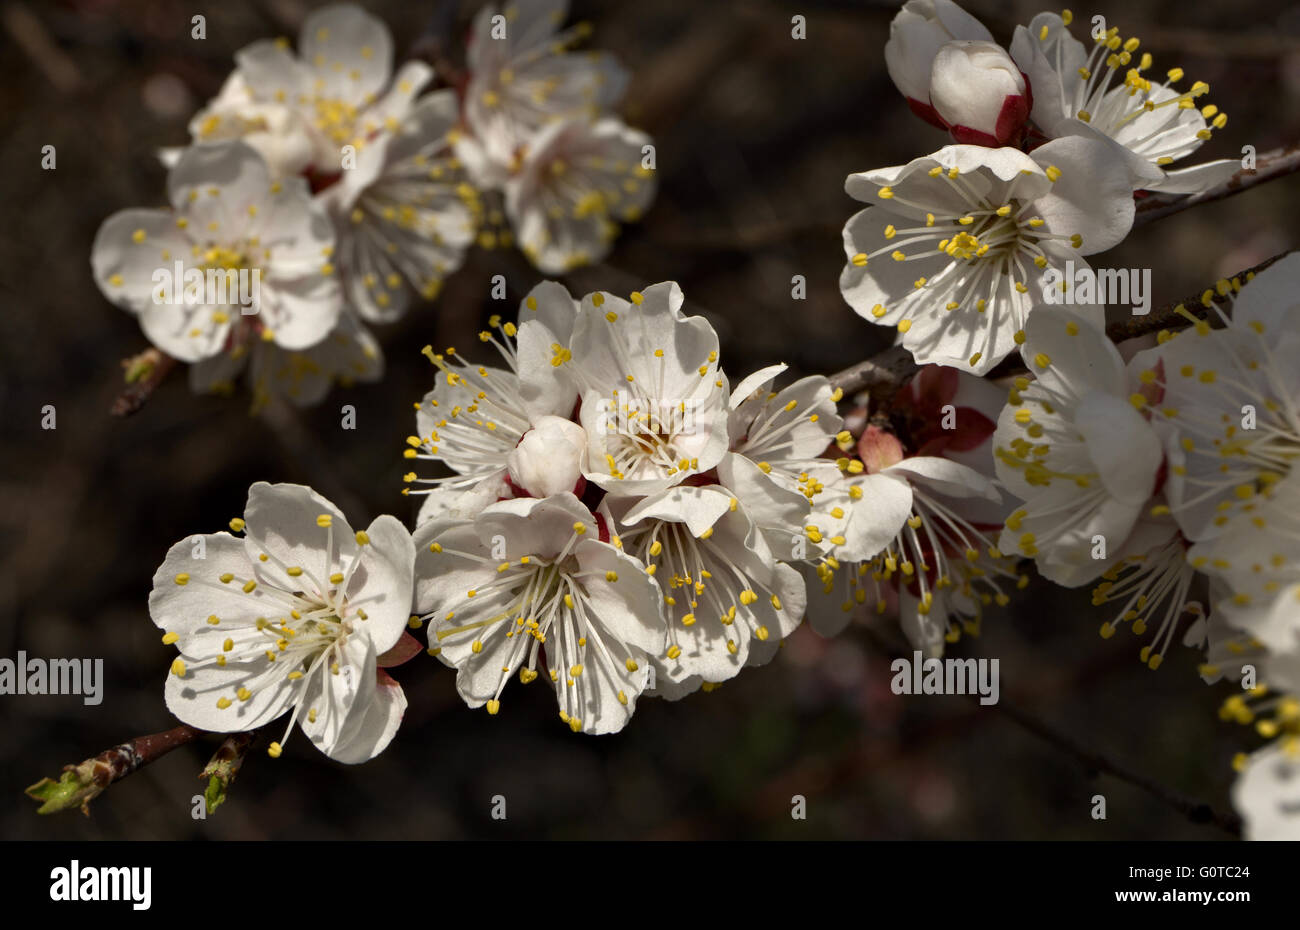 Apricot twig with blooming flowers - Stock Image